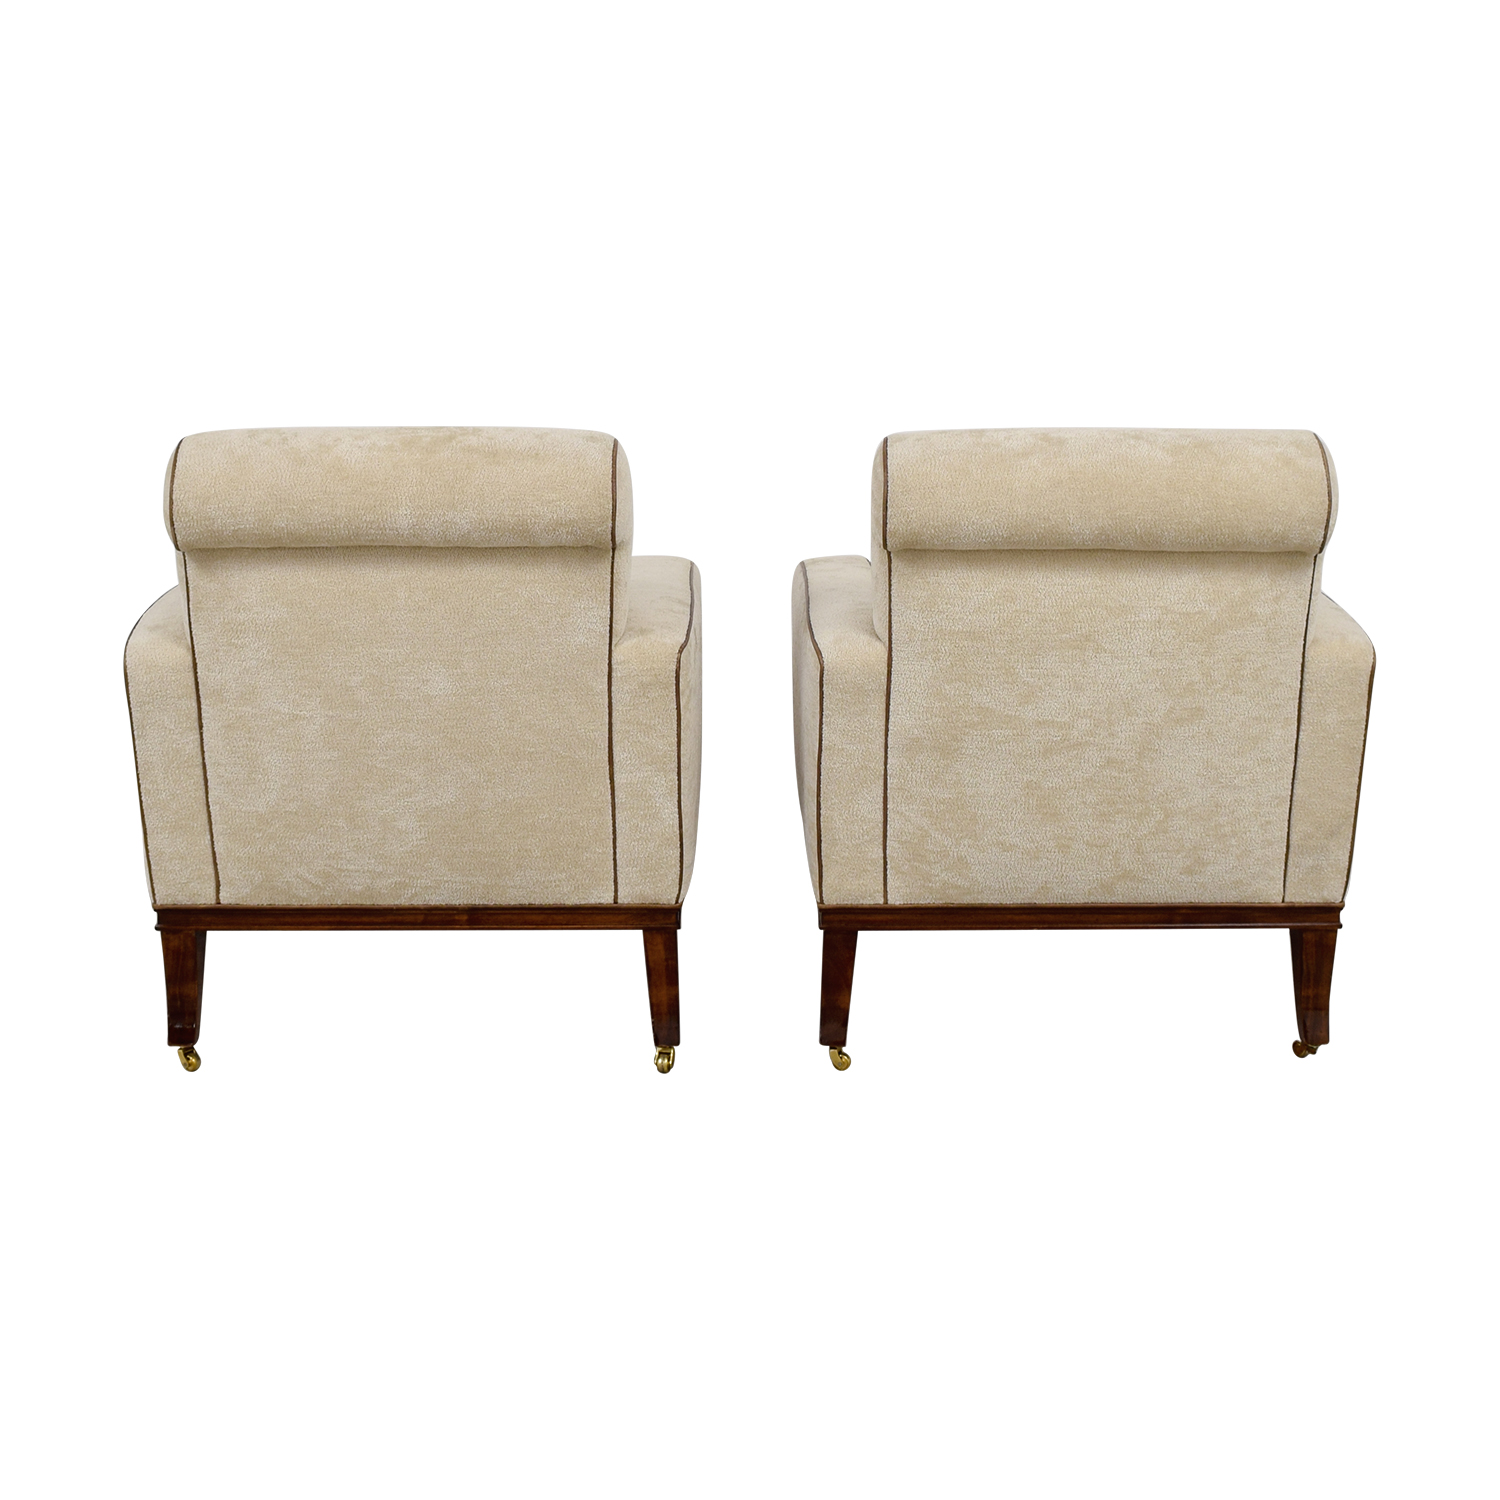 Furniture Masters Beige Club Chairs on Castors Furniture Masters